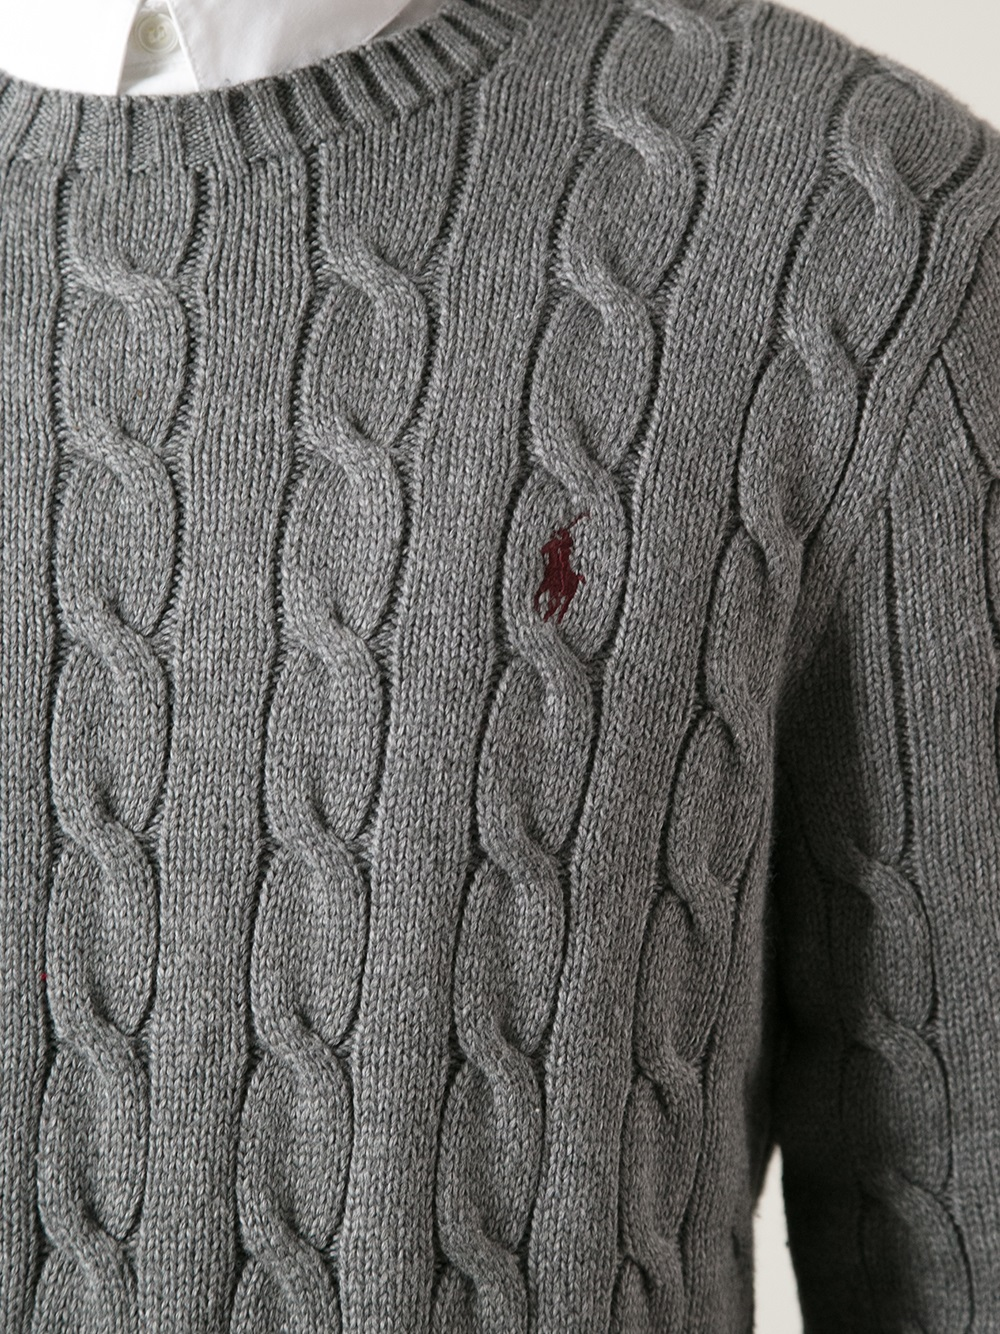 749a6446d4eb polo ralph lauren usa ralph knitted jumper – DreamsRealty